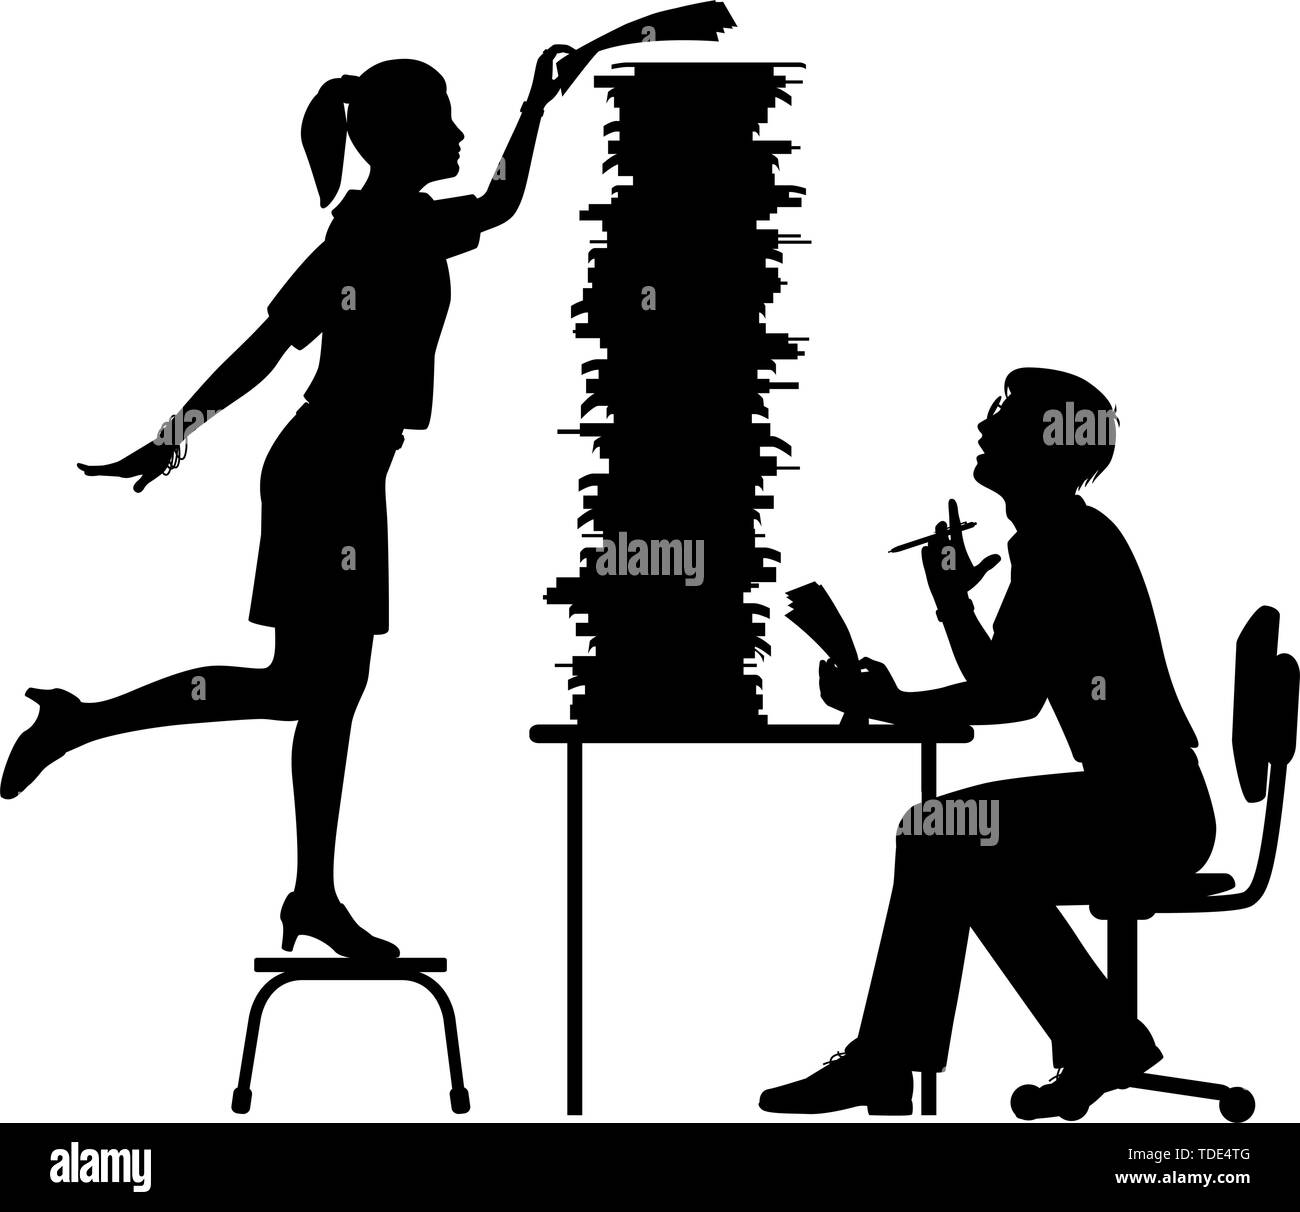 Editable vector silhouette of a secretary adding to the excessive work pile of an office worker with figures as separate objects - Stock Image